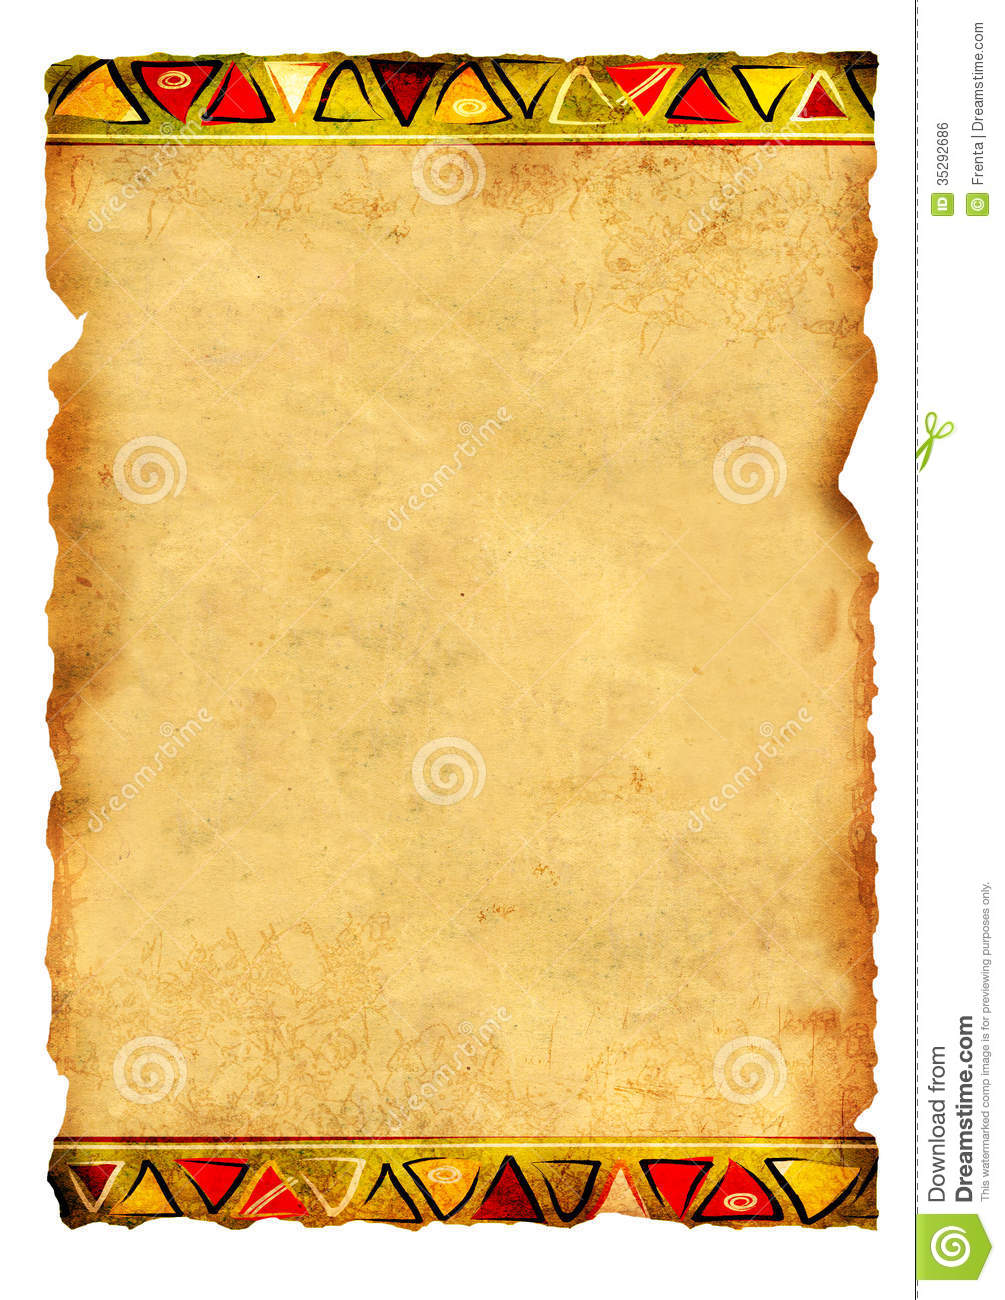 Old Parchment With African Traditional Patterns Royalty Free Stock ...